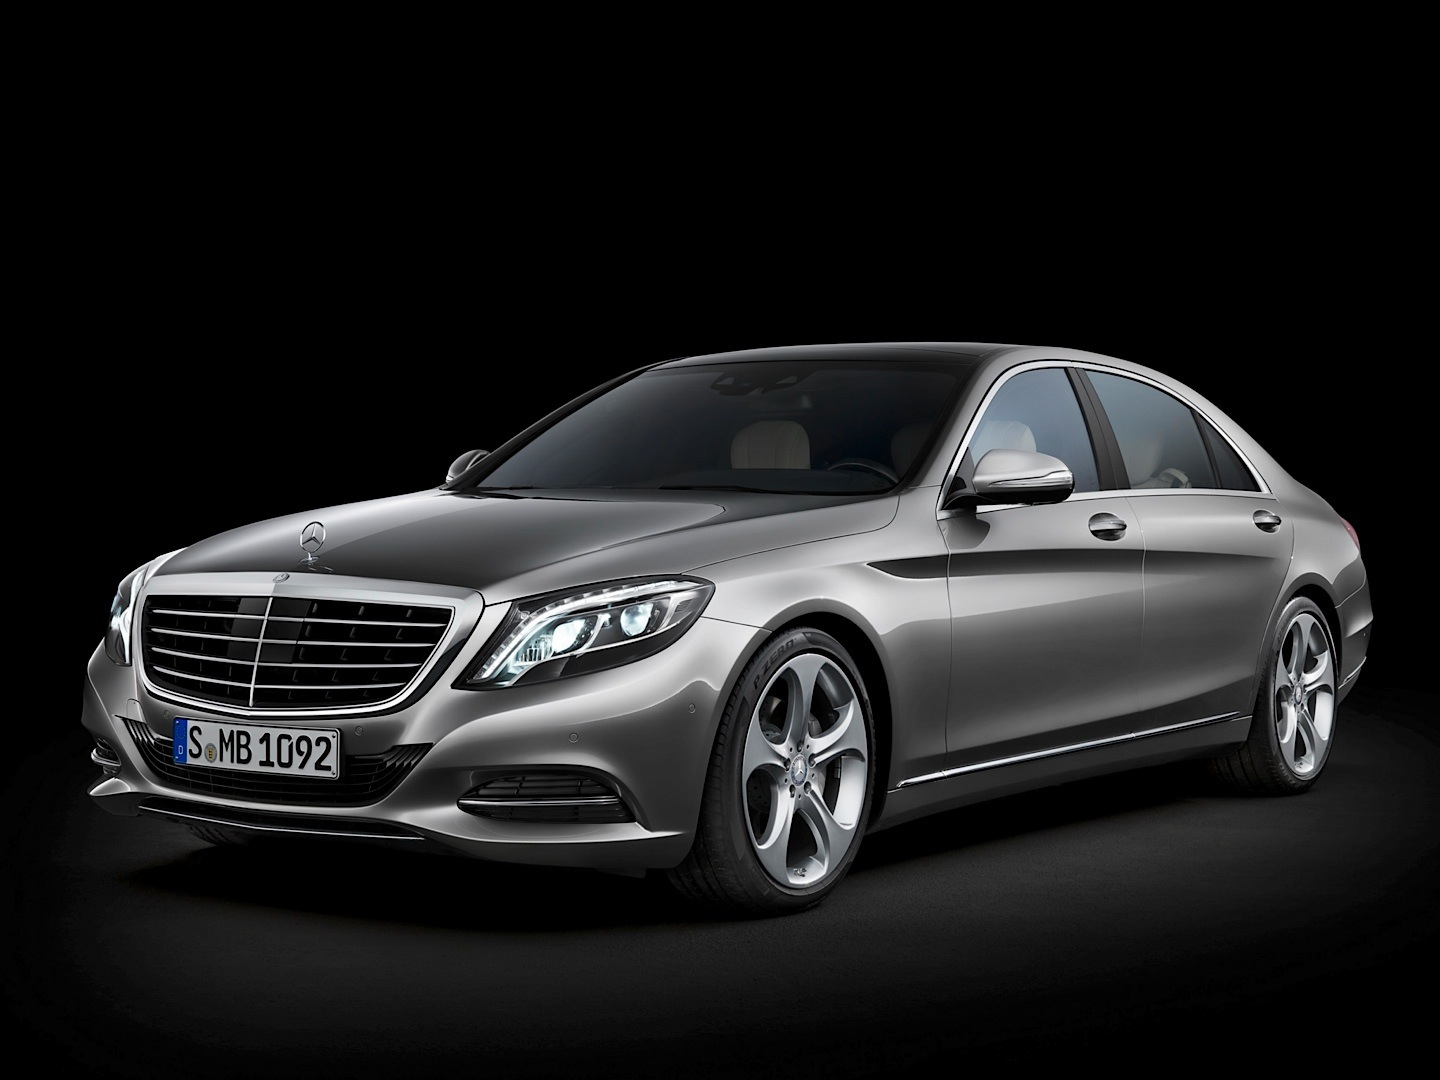 The mercedes benz s class w222 is edmund 39 s best luxury for Mercedes benz sedan